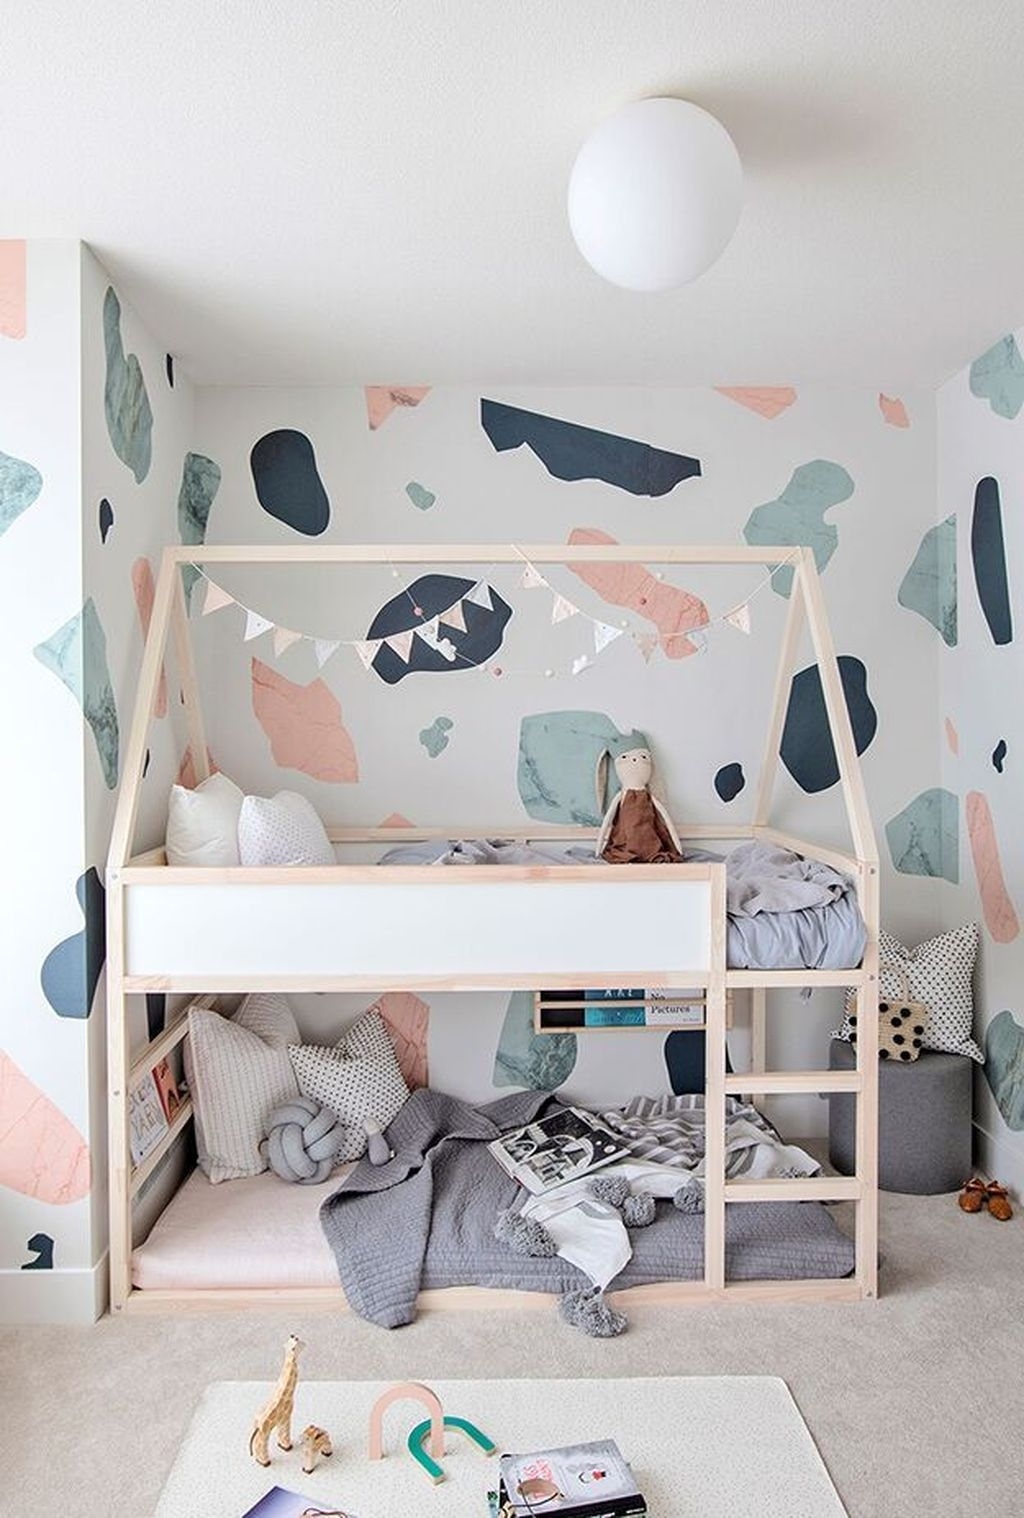 Inspiring Kids Room Design Ideas 42